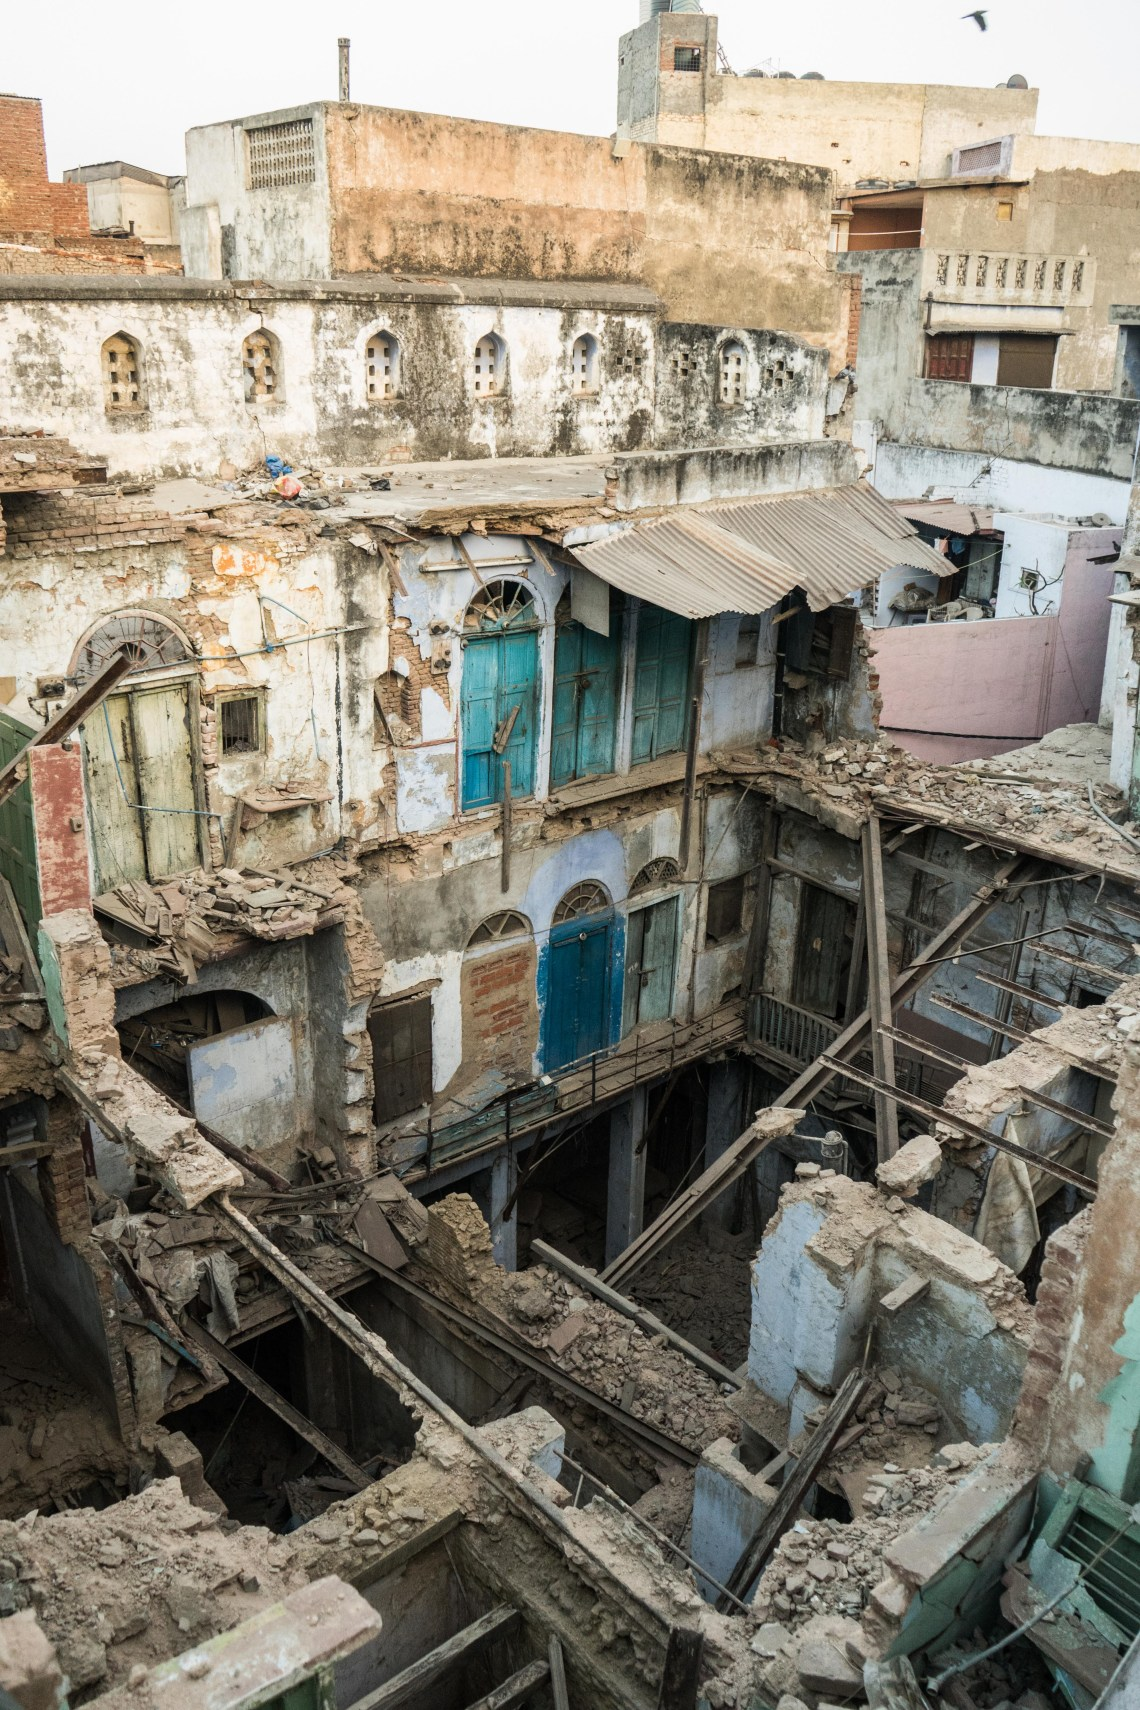 A view behind the first house fronts shows how poor parts of Delhi really are...